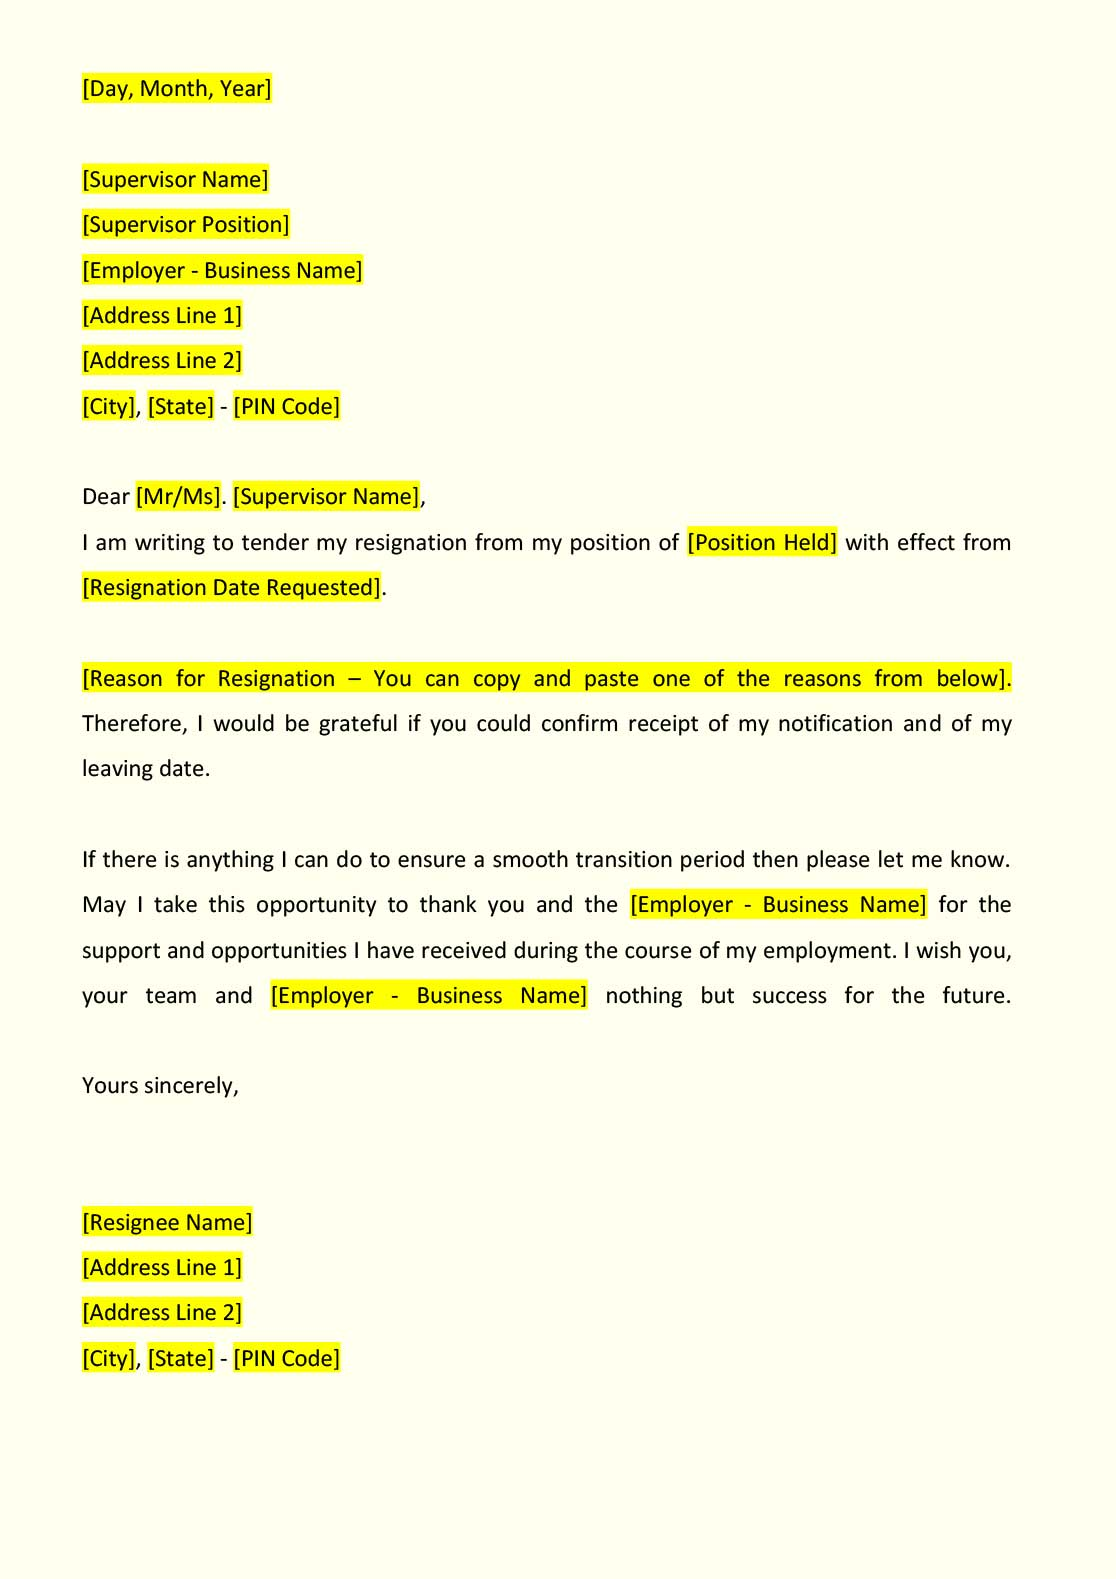 Resignation letter format indiafilings document center sample resignation letter expocarfo Images